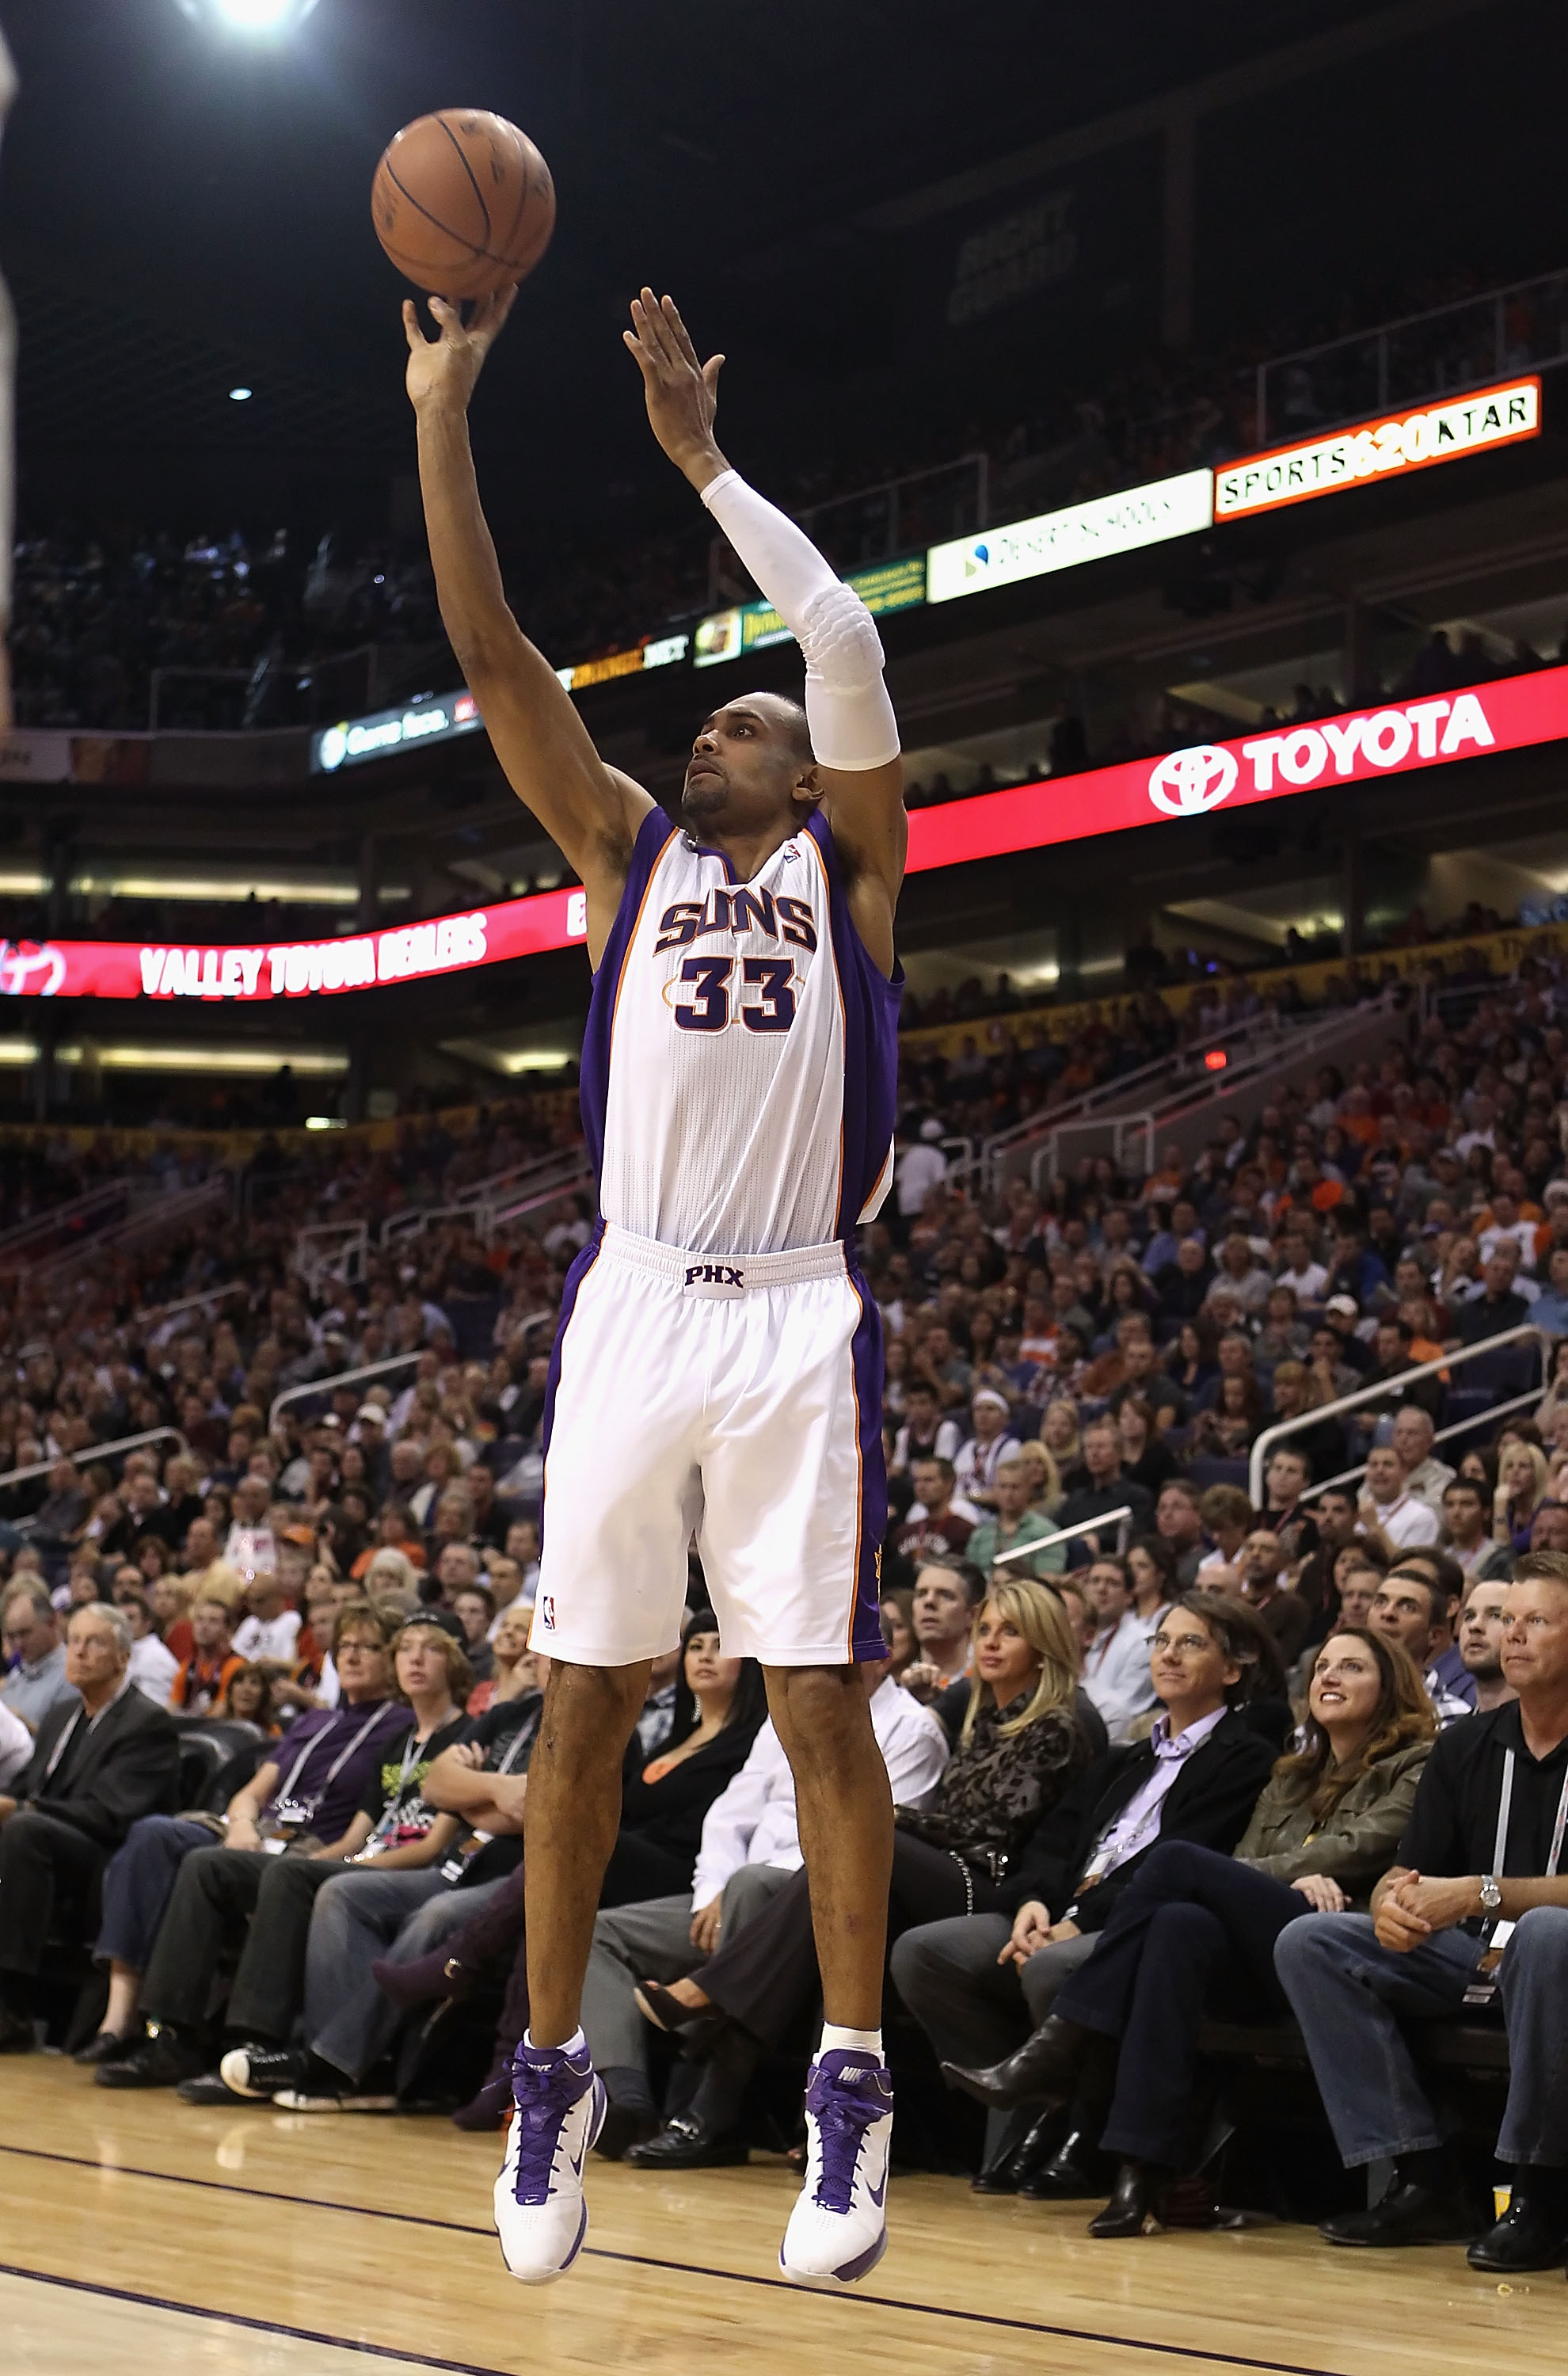 PHOENIX - DECEMBER 10:  Grant Hill #33 of the Phoenix Suns puts up a shot during the NBA game against the Portland Trail Blazers at US Airways Center on December 10, 2010 in Phoenix, Arizona. The Trail Blazers defeated the Suns 101-94.  NOTE TO USER: User